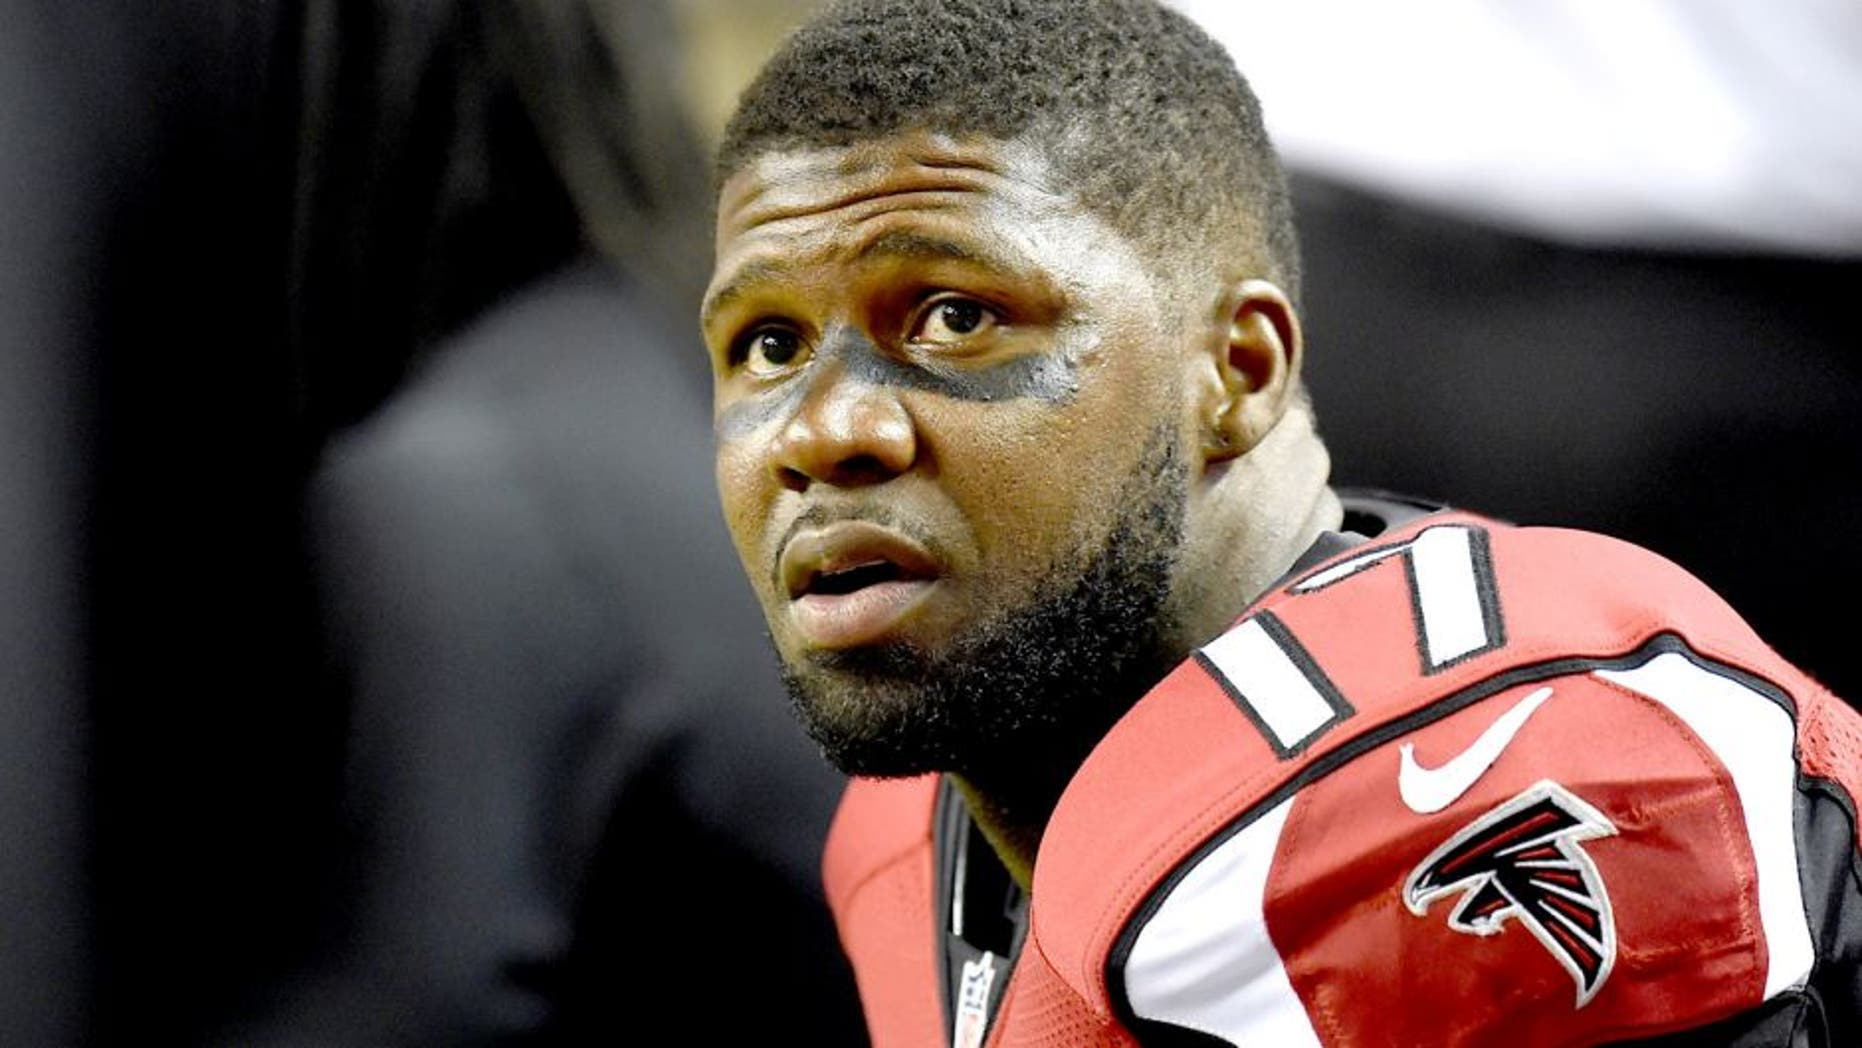 Aug 23, 2014; Atlanta, GA, USA; Atlanta Falcons wide receiver Devin Hester (17) shown on the sideline against the Tennessee Titans during the second half at the Georgia Dome. The Titans defeated the Falcons 24-17. Mandatory Credit: Dale Zanine-USA TODAY Sports